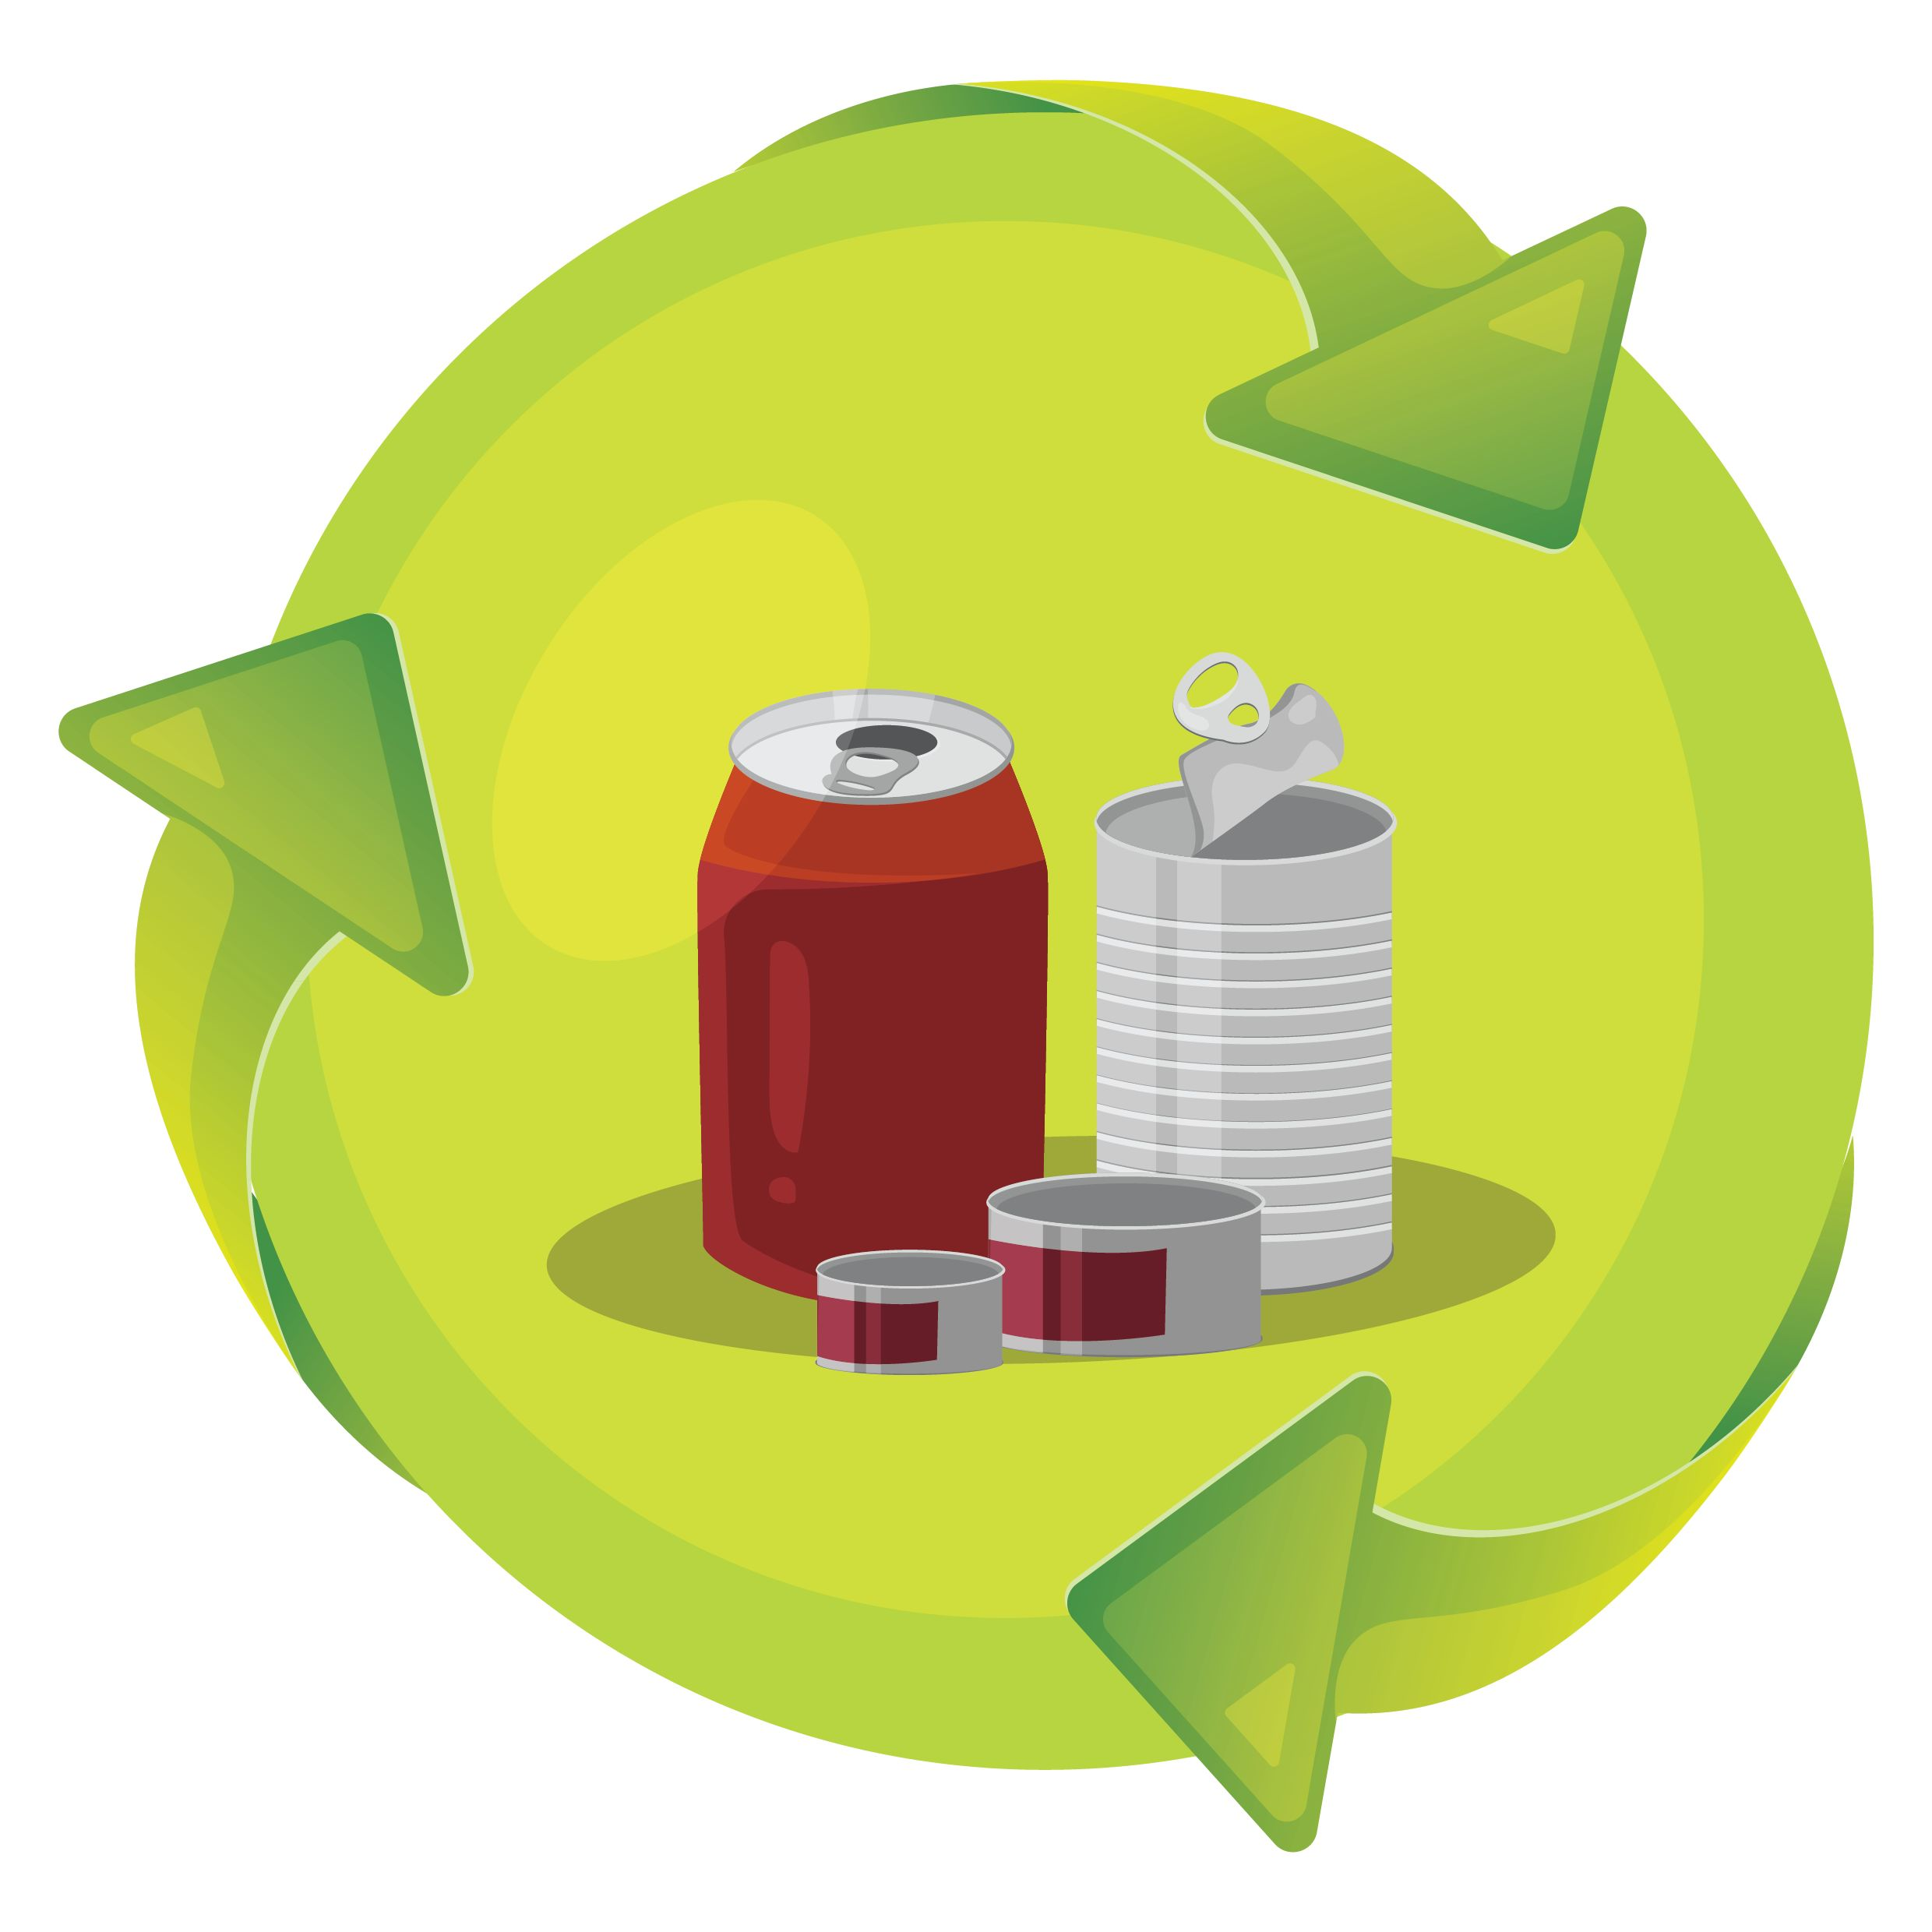 non-energy-resources-cans